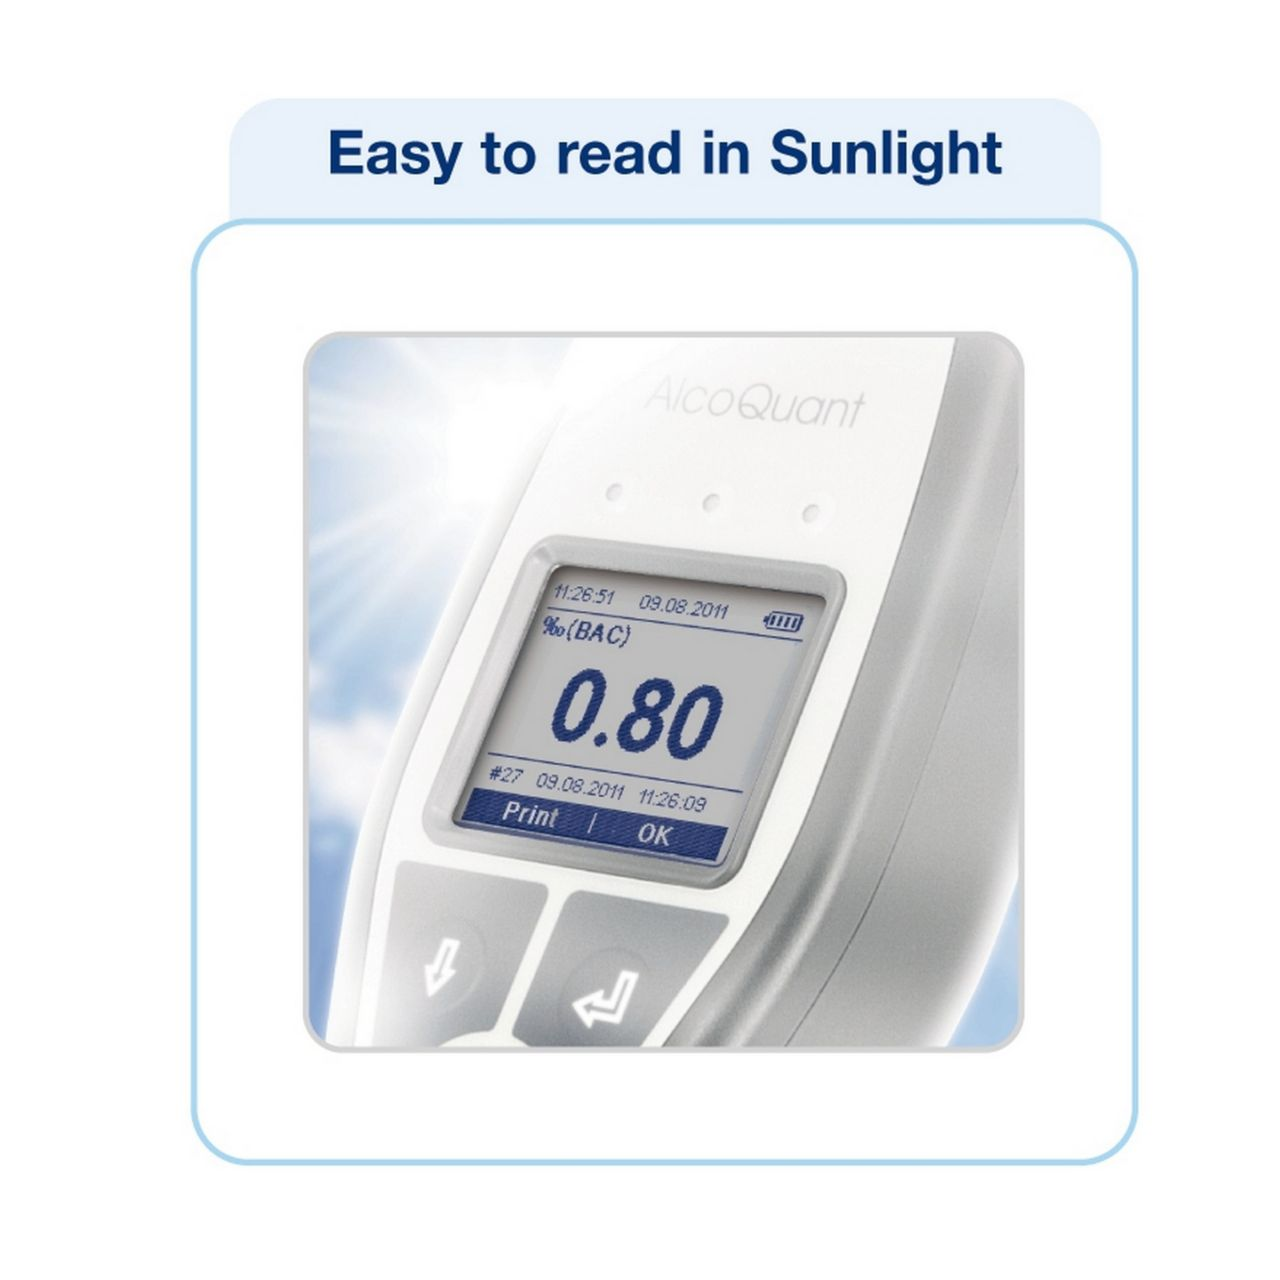 Product image AlcoQuant® 6020 plus (Easy to read in Sunlight)